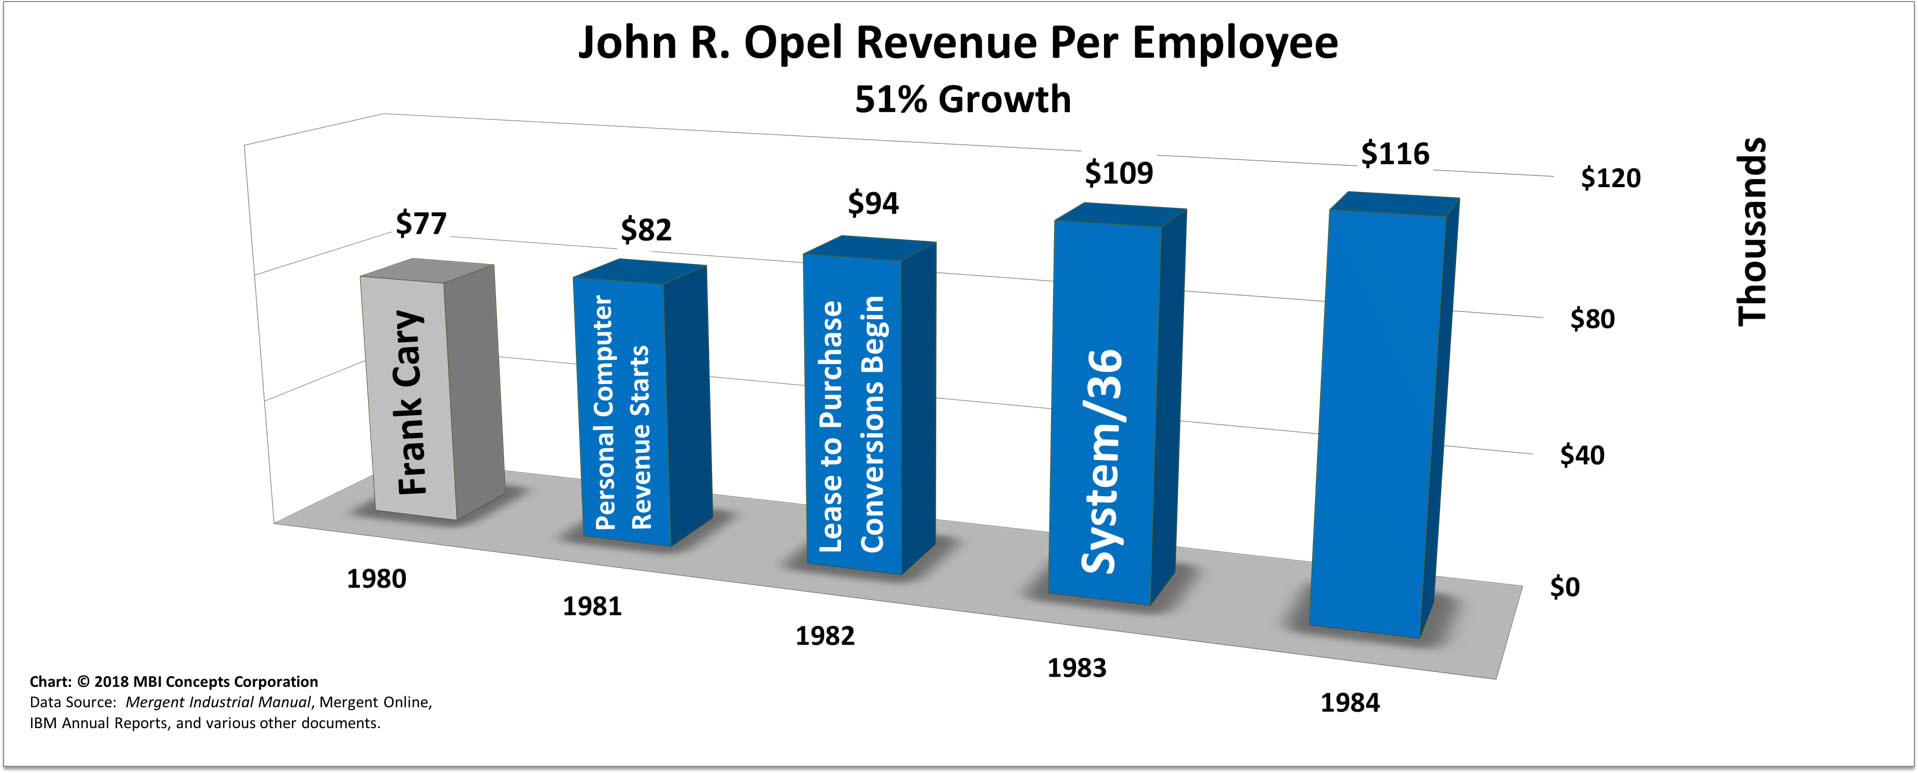 Bar chart of John R. Opel's Yearly Revenue per Employee over his 4 years as IBM's CEO from 1981 to 1984